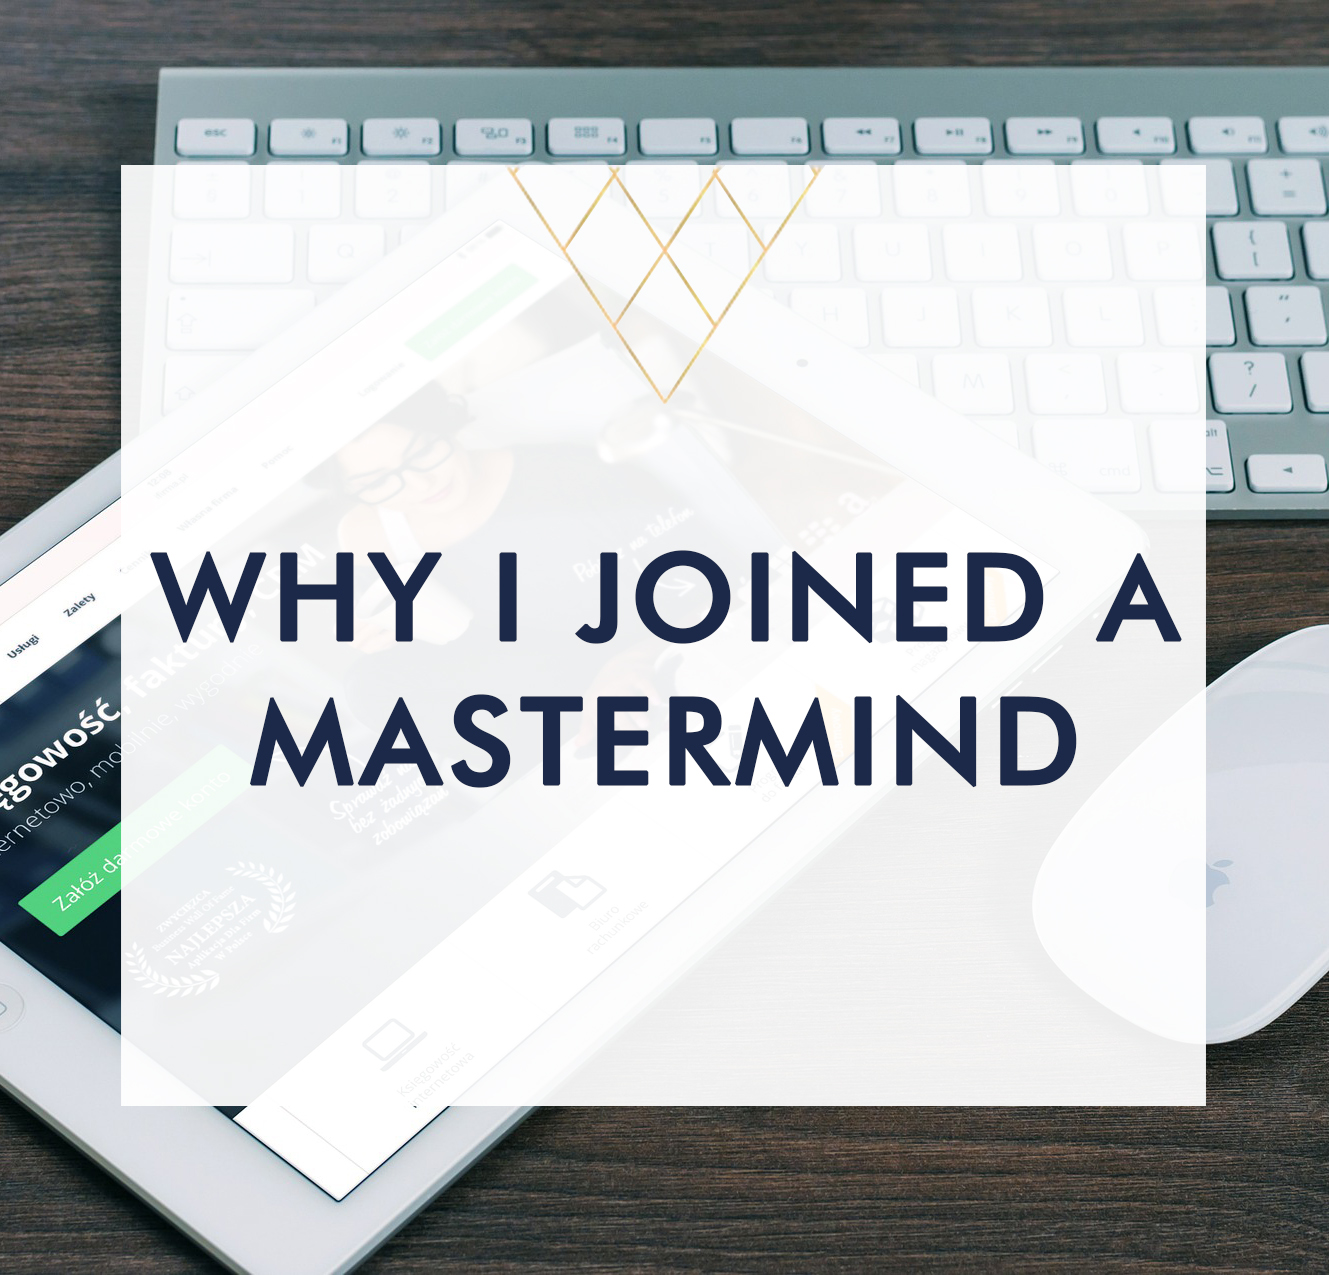 why I joined mastermind square